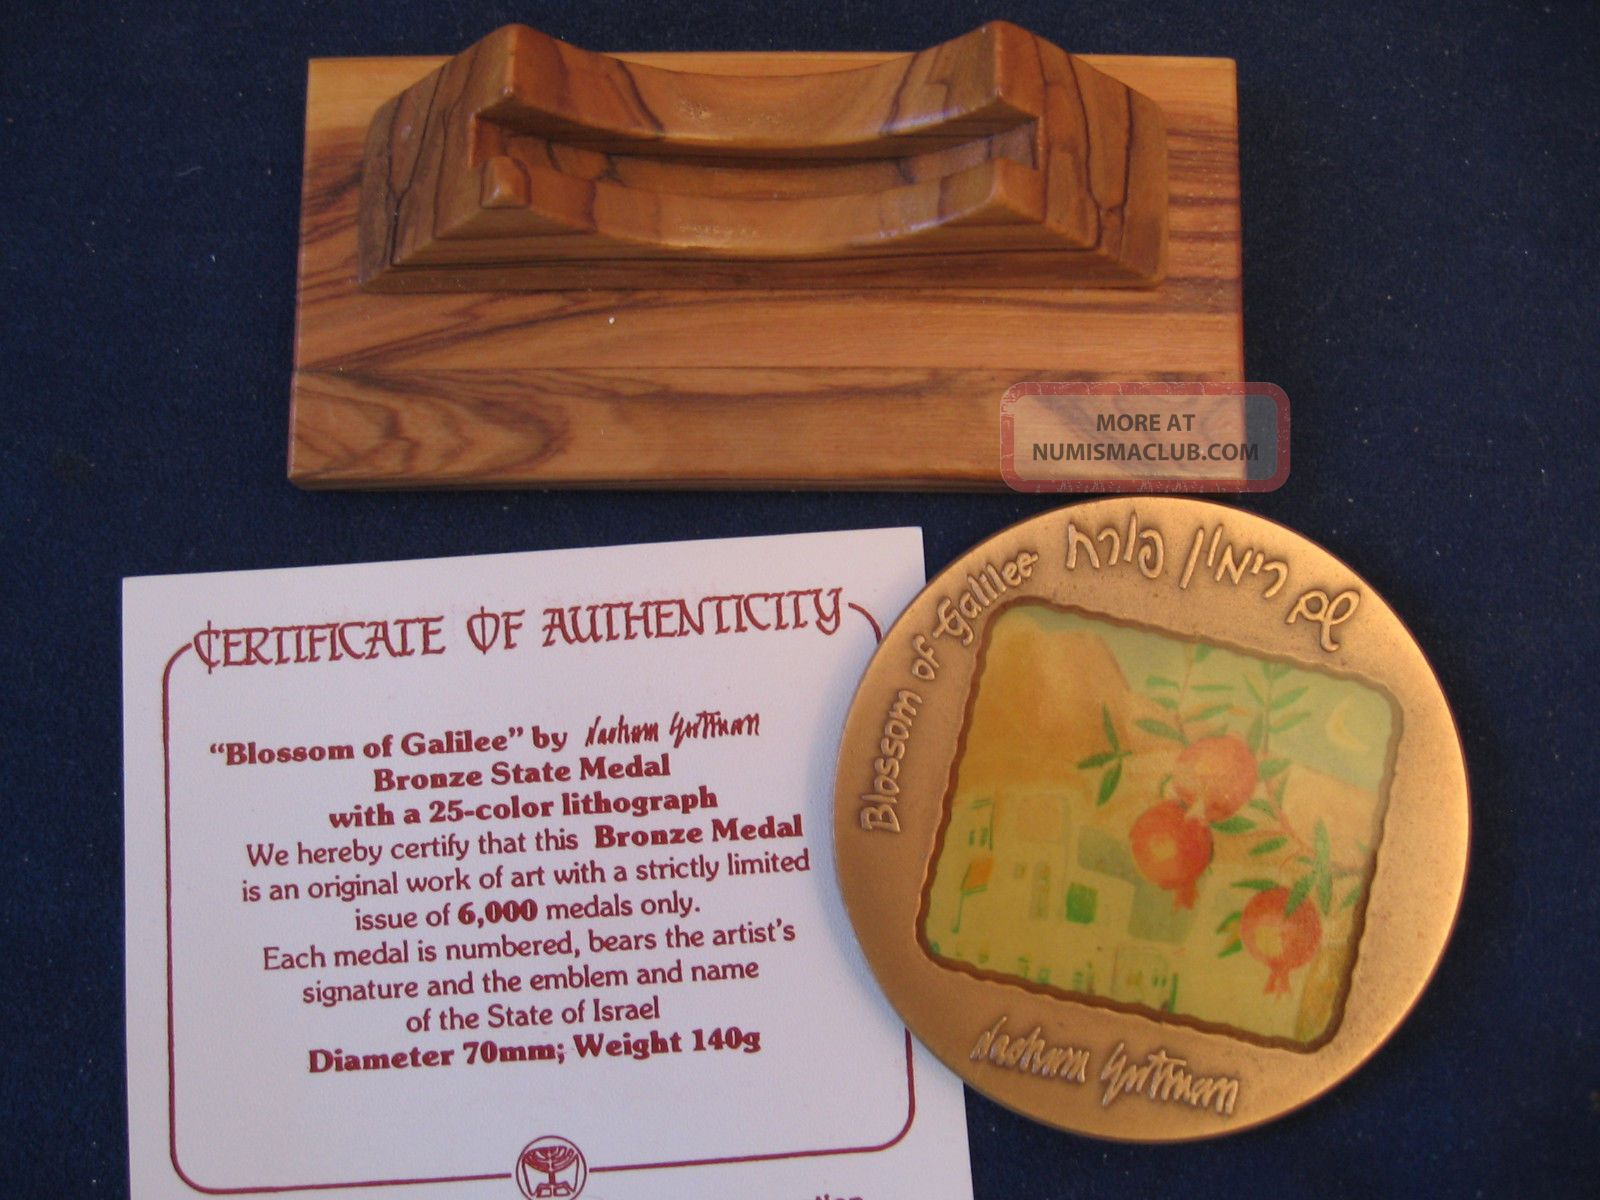 Israel BLOSSOM OF GALILEE State Art Medal by GUTMAN Bronze 70mm 140g BOX COA